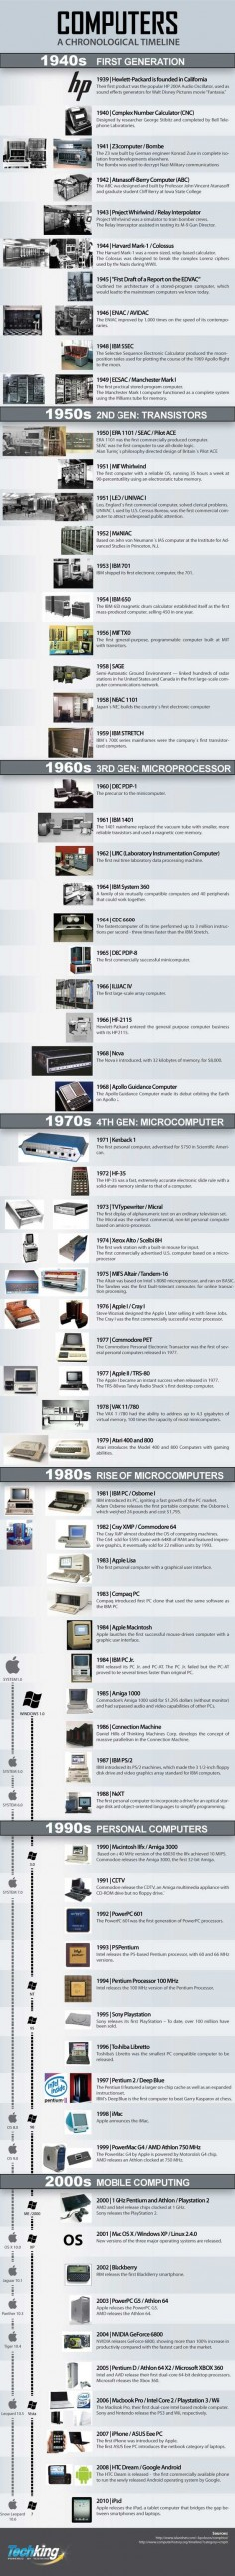 Computers: An Awesome Chronological Timeline #infographic